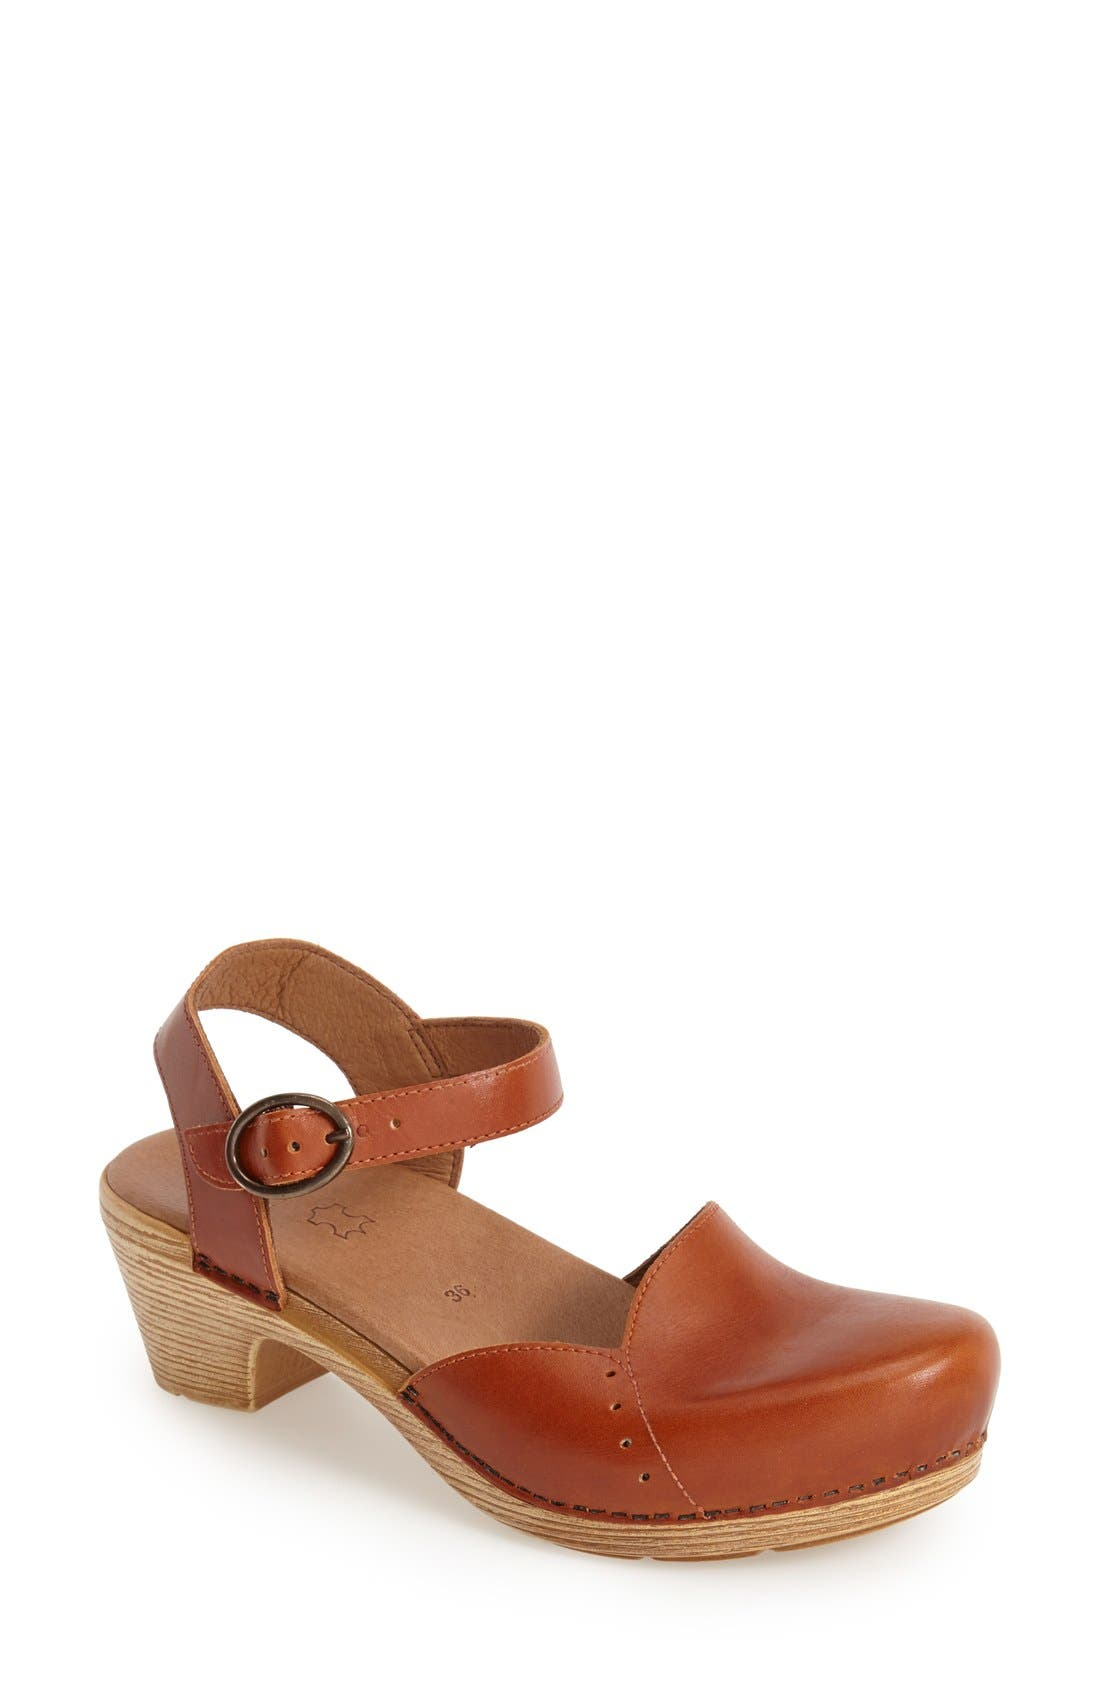 'Maisie' Ankle Strap Leather Pump,                         Main,                         color, Toffee